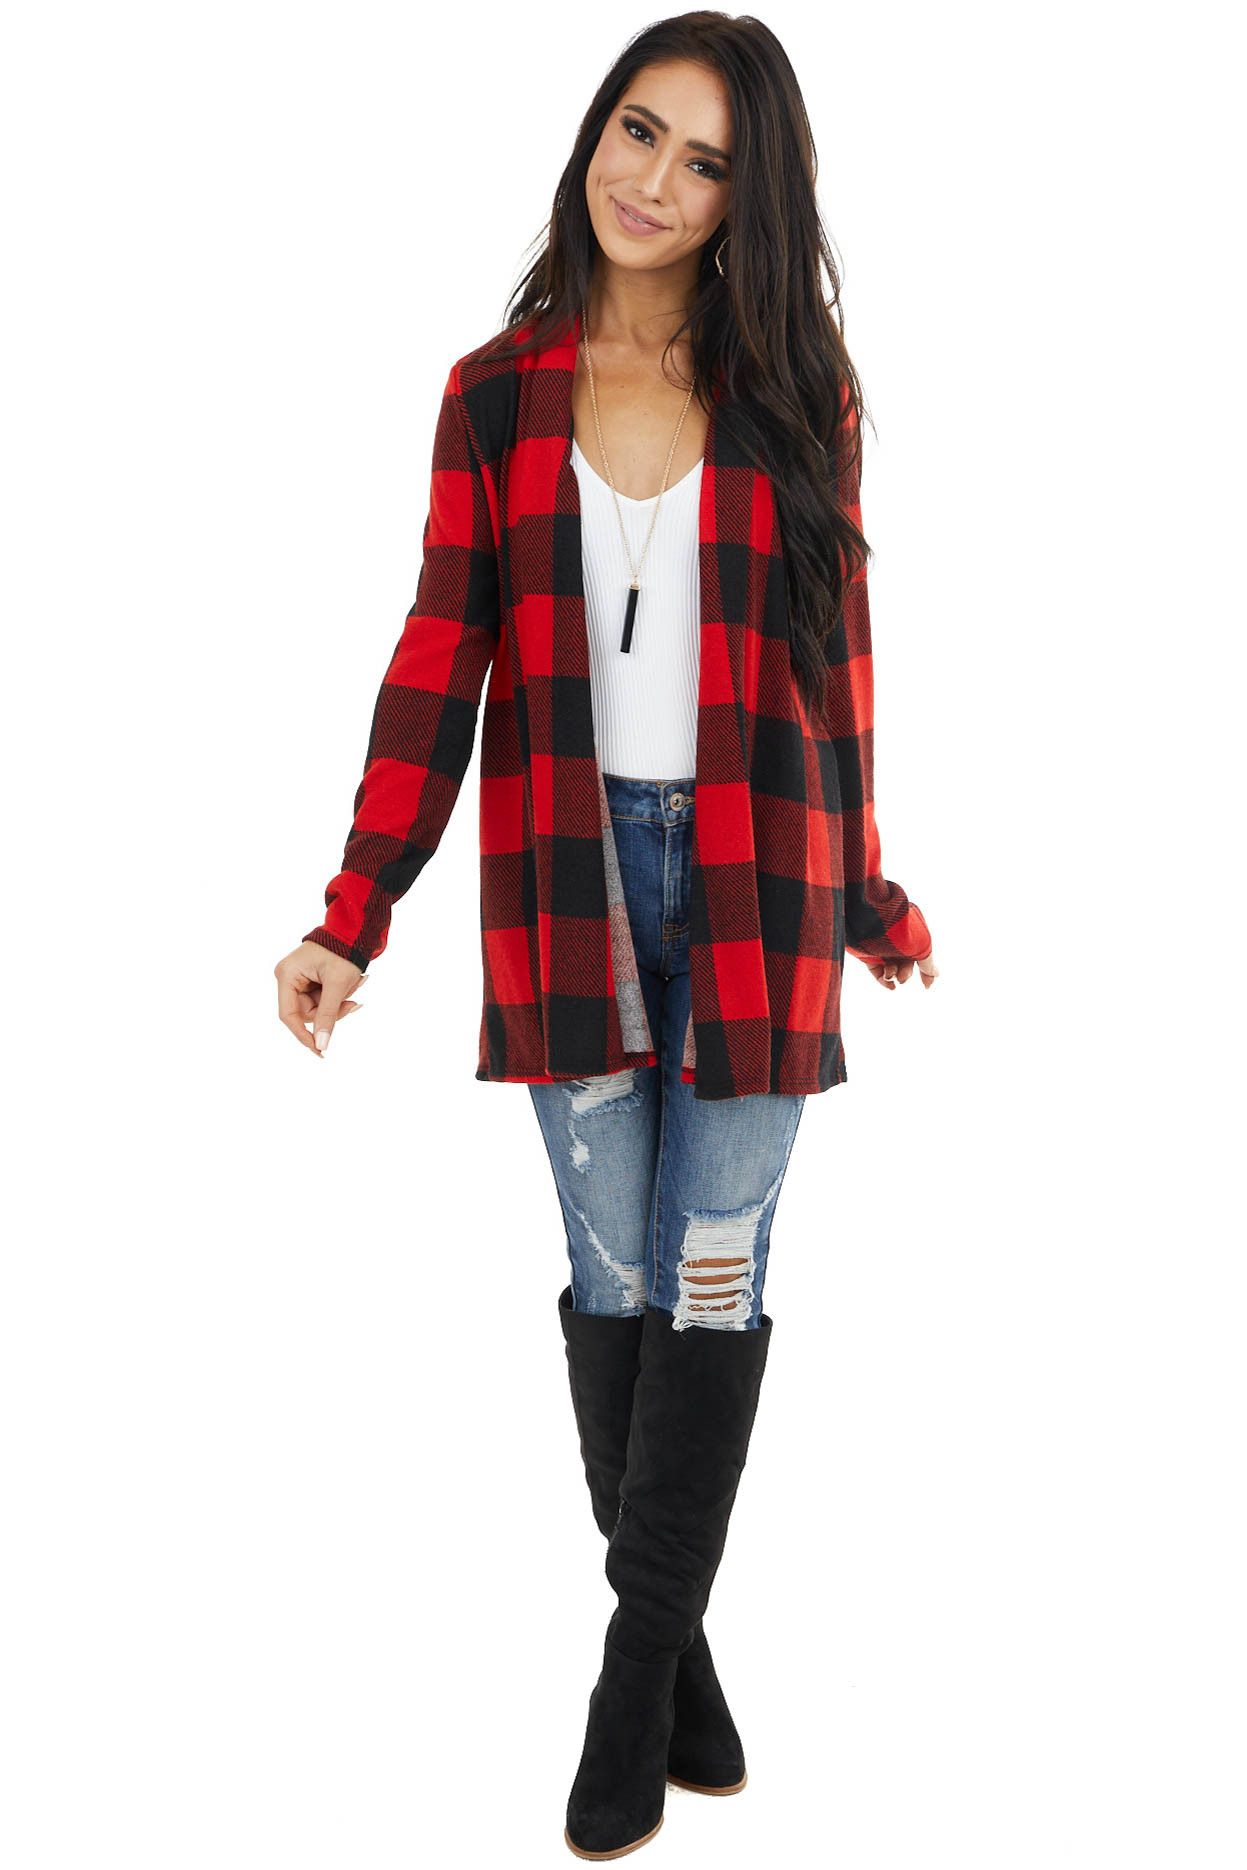 Crimson and Black Buffalo Plaid Cardigan with Elbow Patches